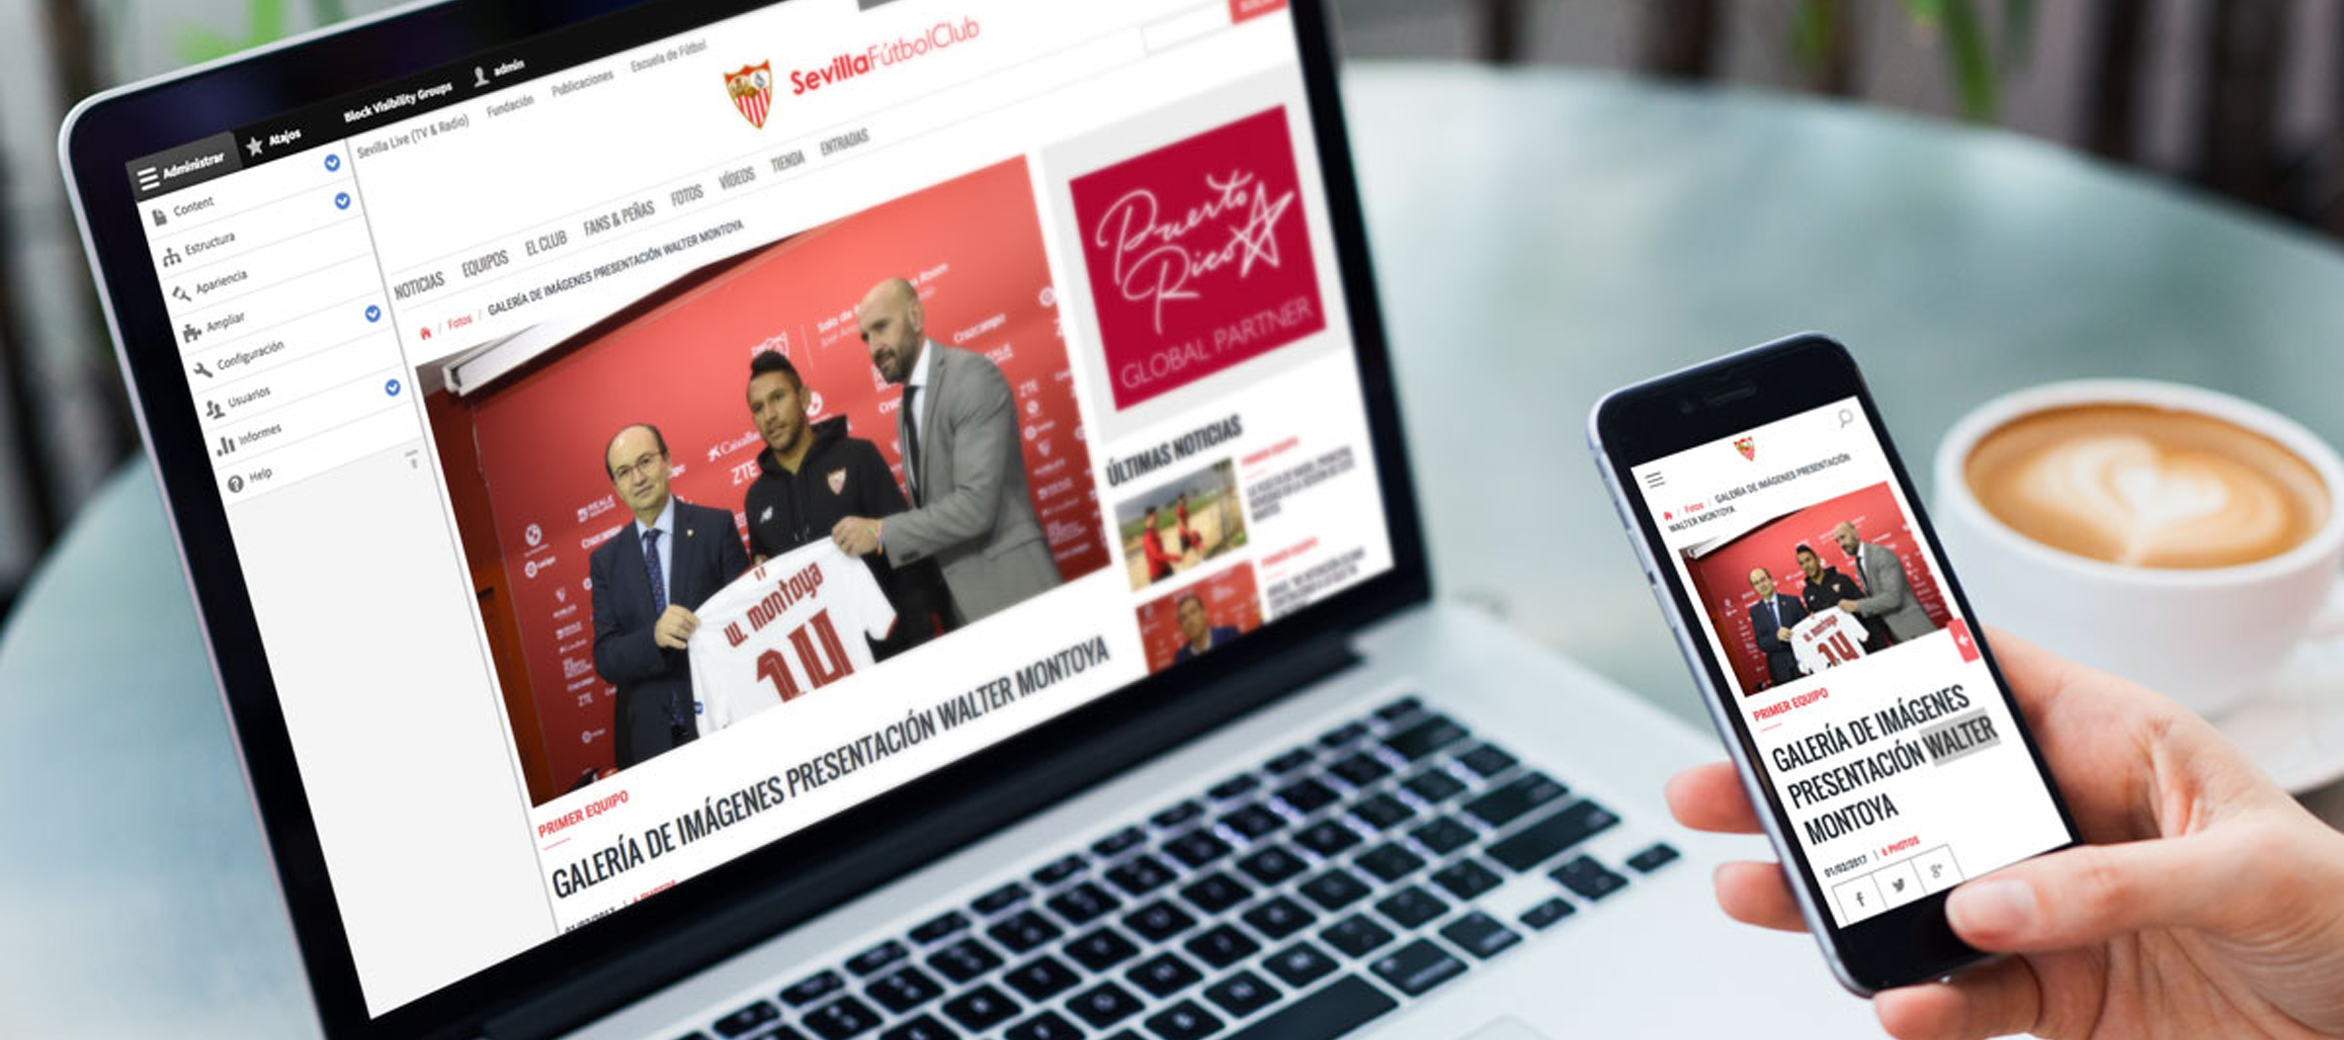 New international case study in Drupal 8: Sevilla FC